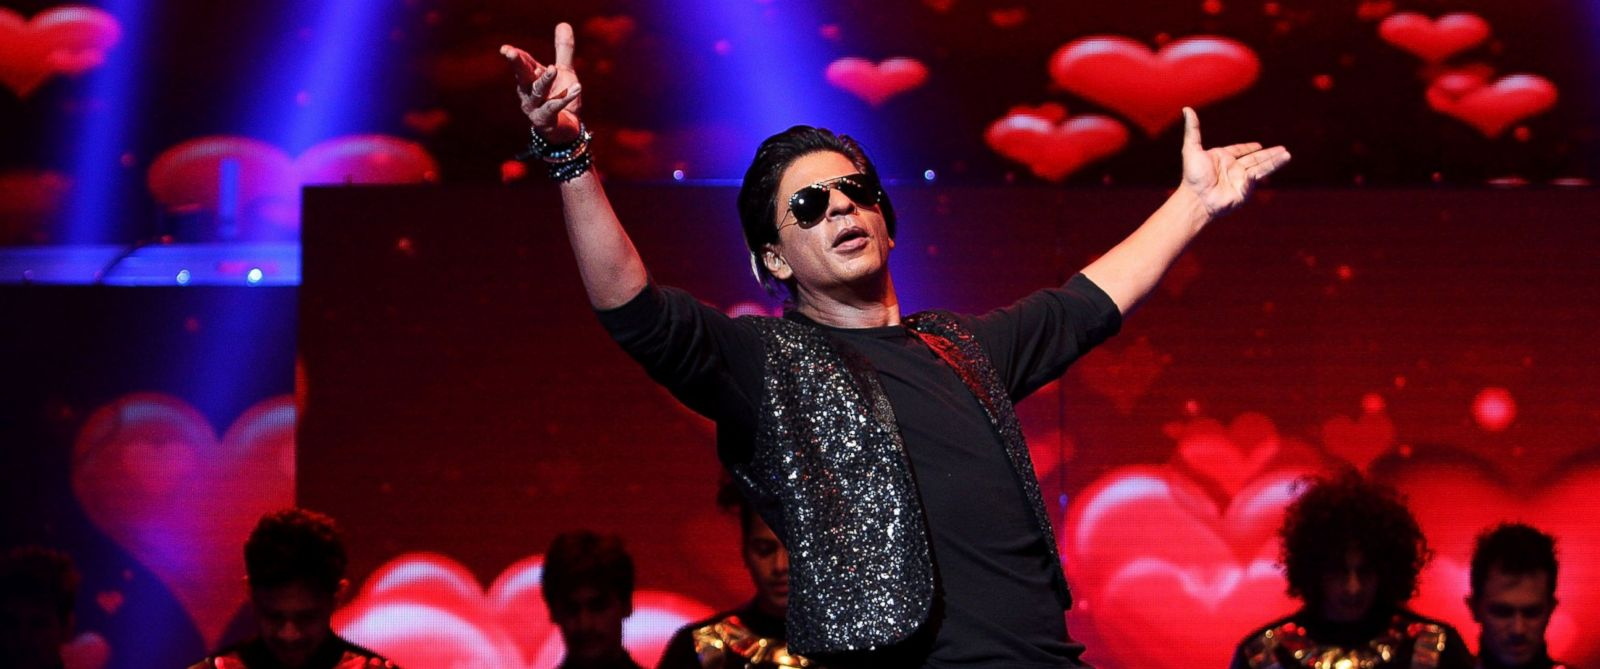 PHOTO: Bollywood Actor Shahrukh Khan performs live for fans at Allphones Arena, Oct. 7, 2013 in Sydney, Australia.